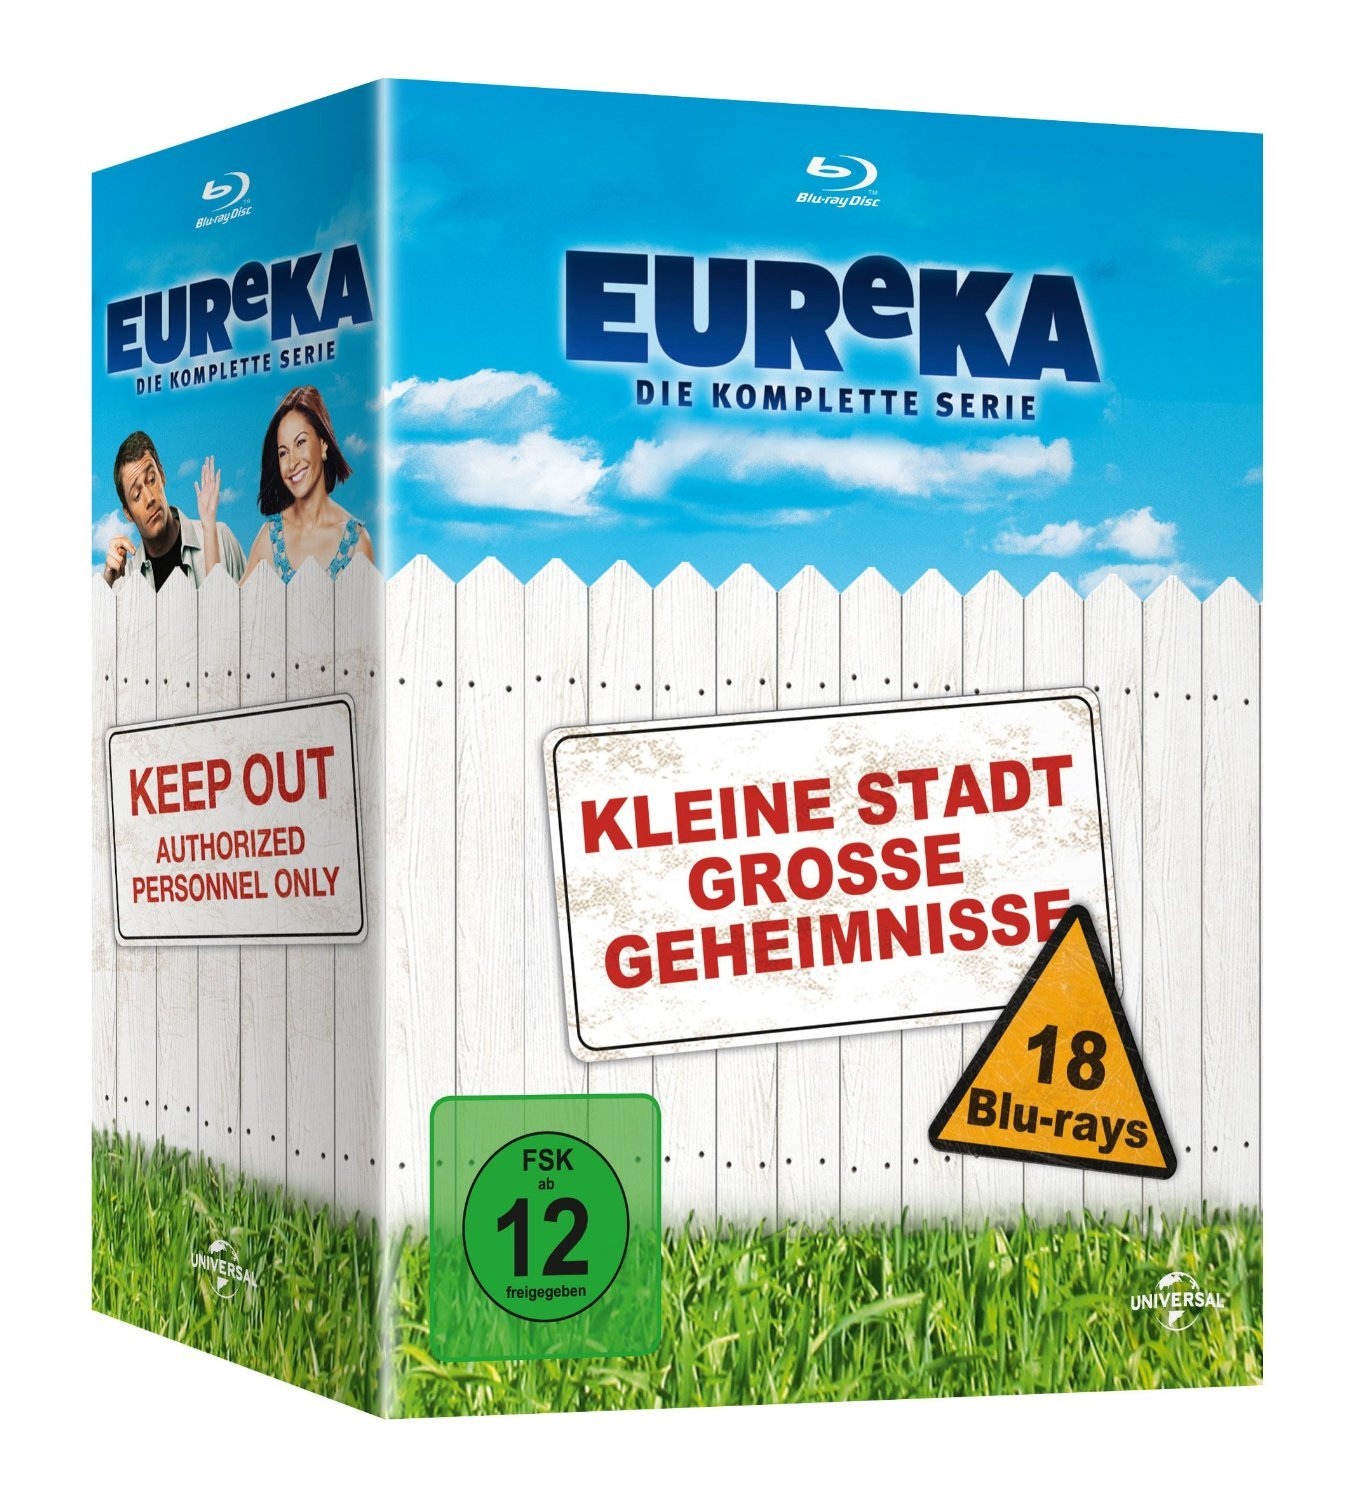 Eureka - The Complete Series [Blu-ray] German Packaging, English is a language option. by